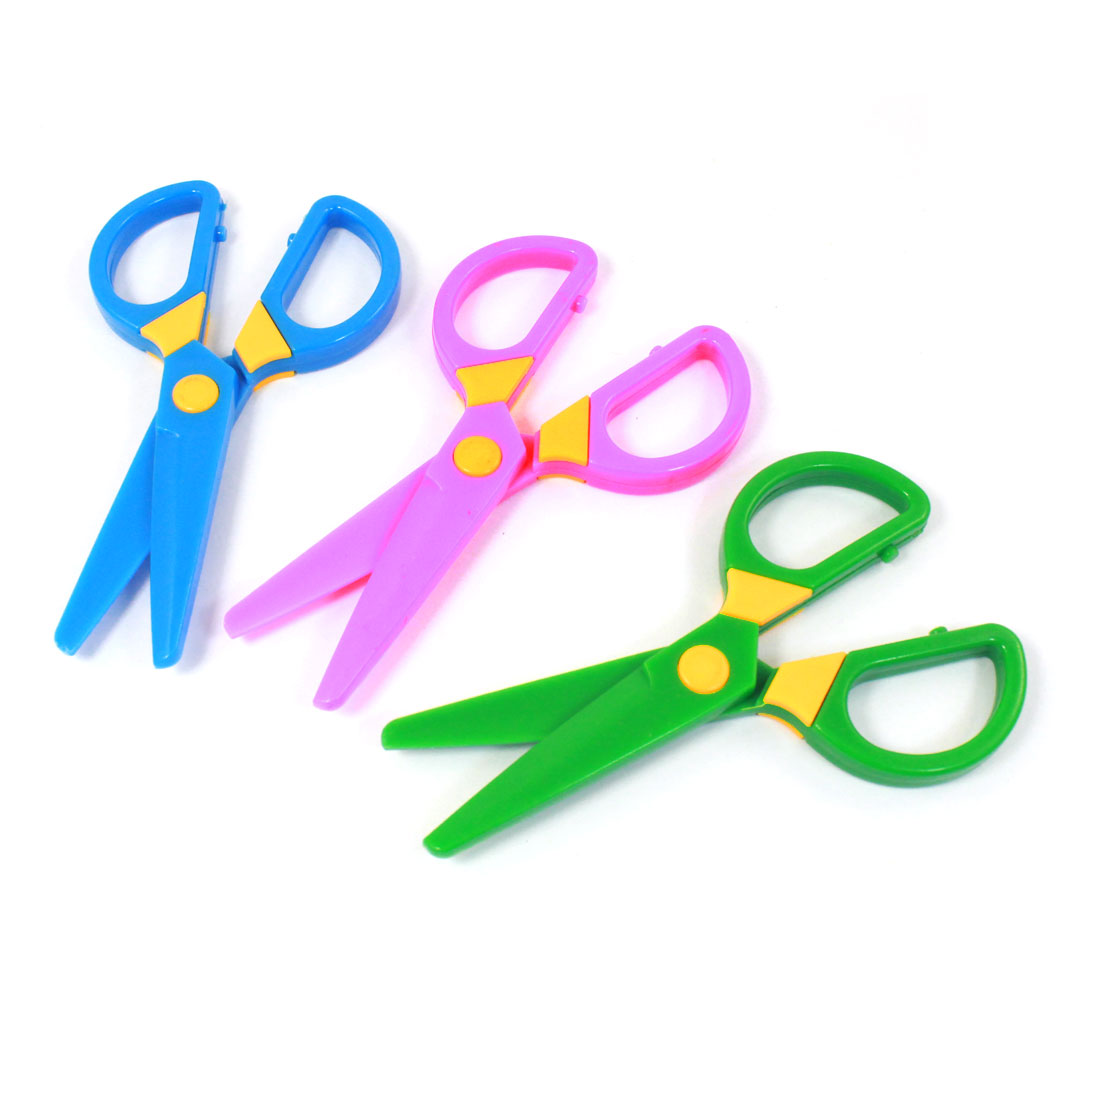 School Students Paper Craft Multicolor Plastic Handle Scissors 3 Pcs